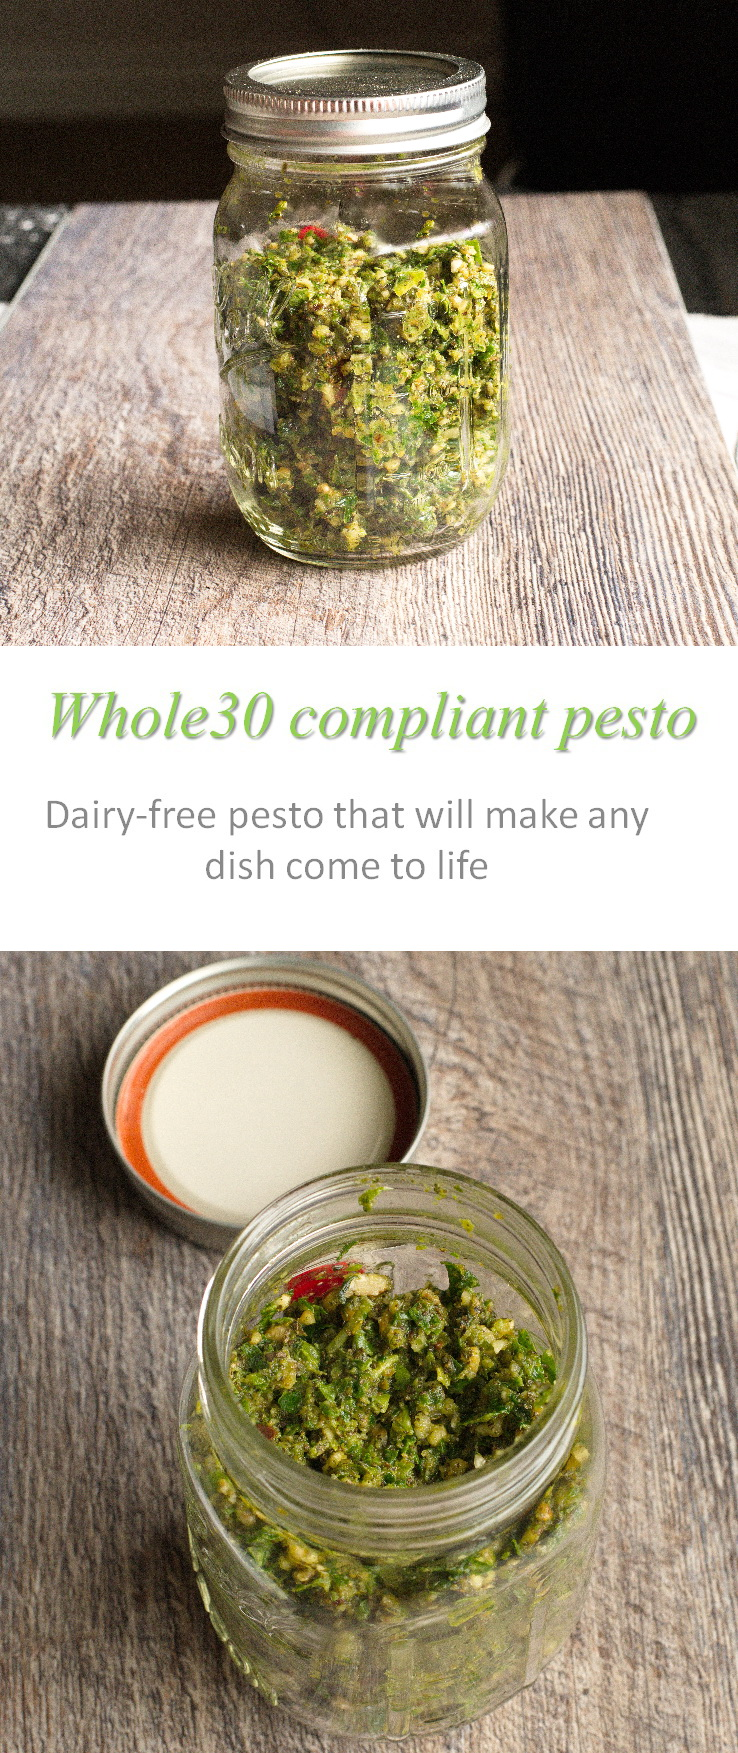 A Whole30 compliant, dairy-free pesto sauce that makes any meal come to life! #pesto #cookathome #glutenfree #dairyfree #paleo #whole30